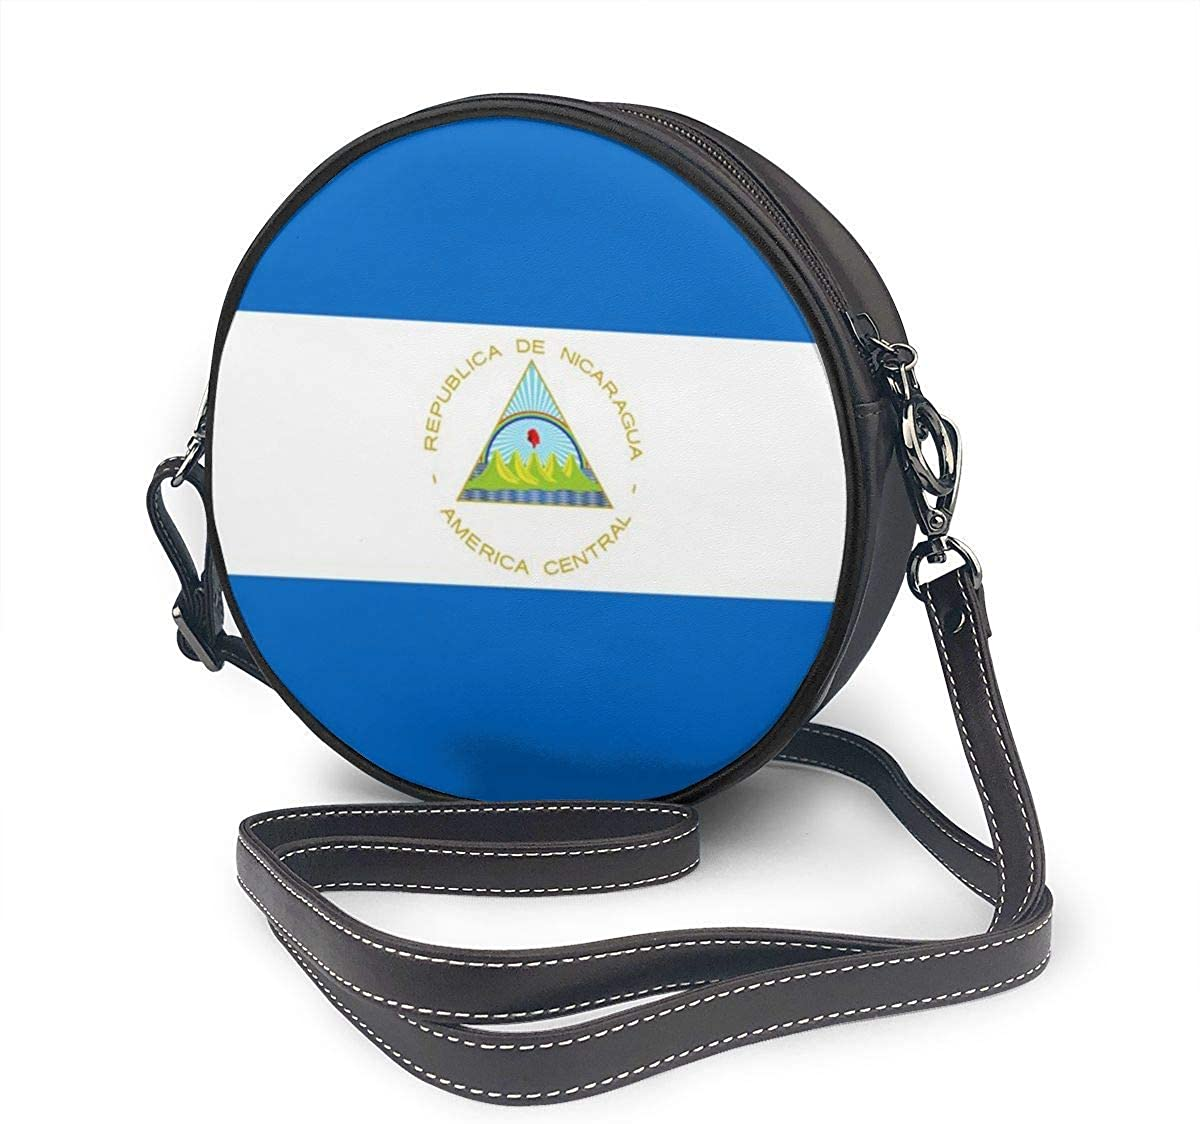 fhjhfgjghfjghfj Women Round Crossbody Bag Bolso bandolera, Nicaragua Flag Handbag Purse Single Shoulder Bag PU Leather Chain Strap Handle Tote